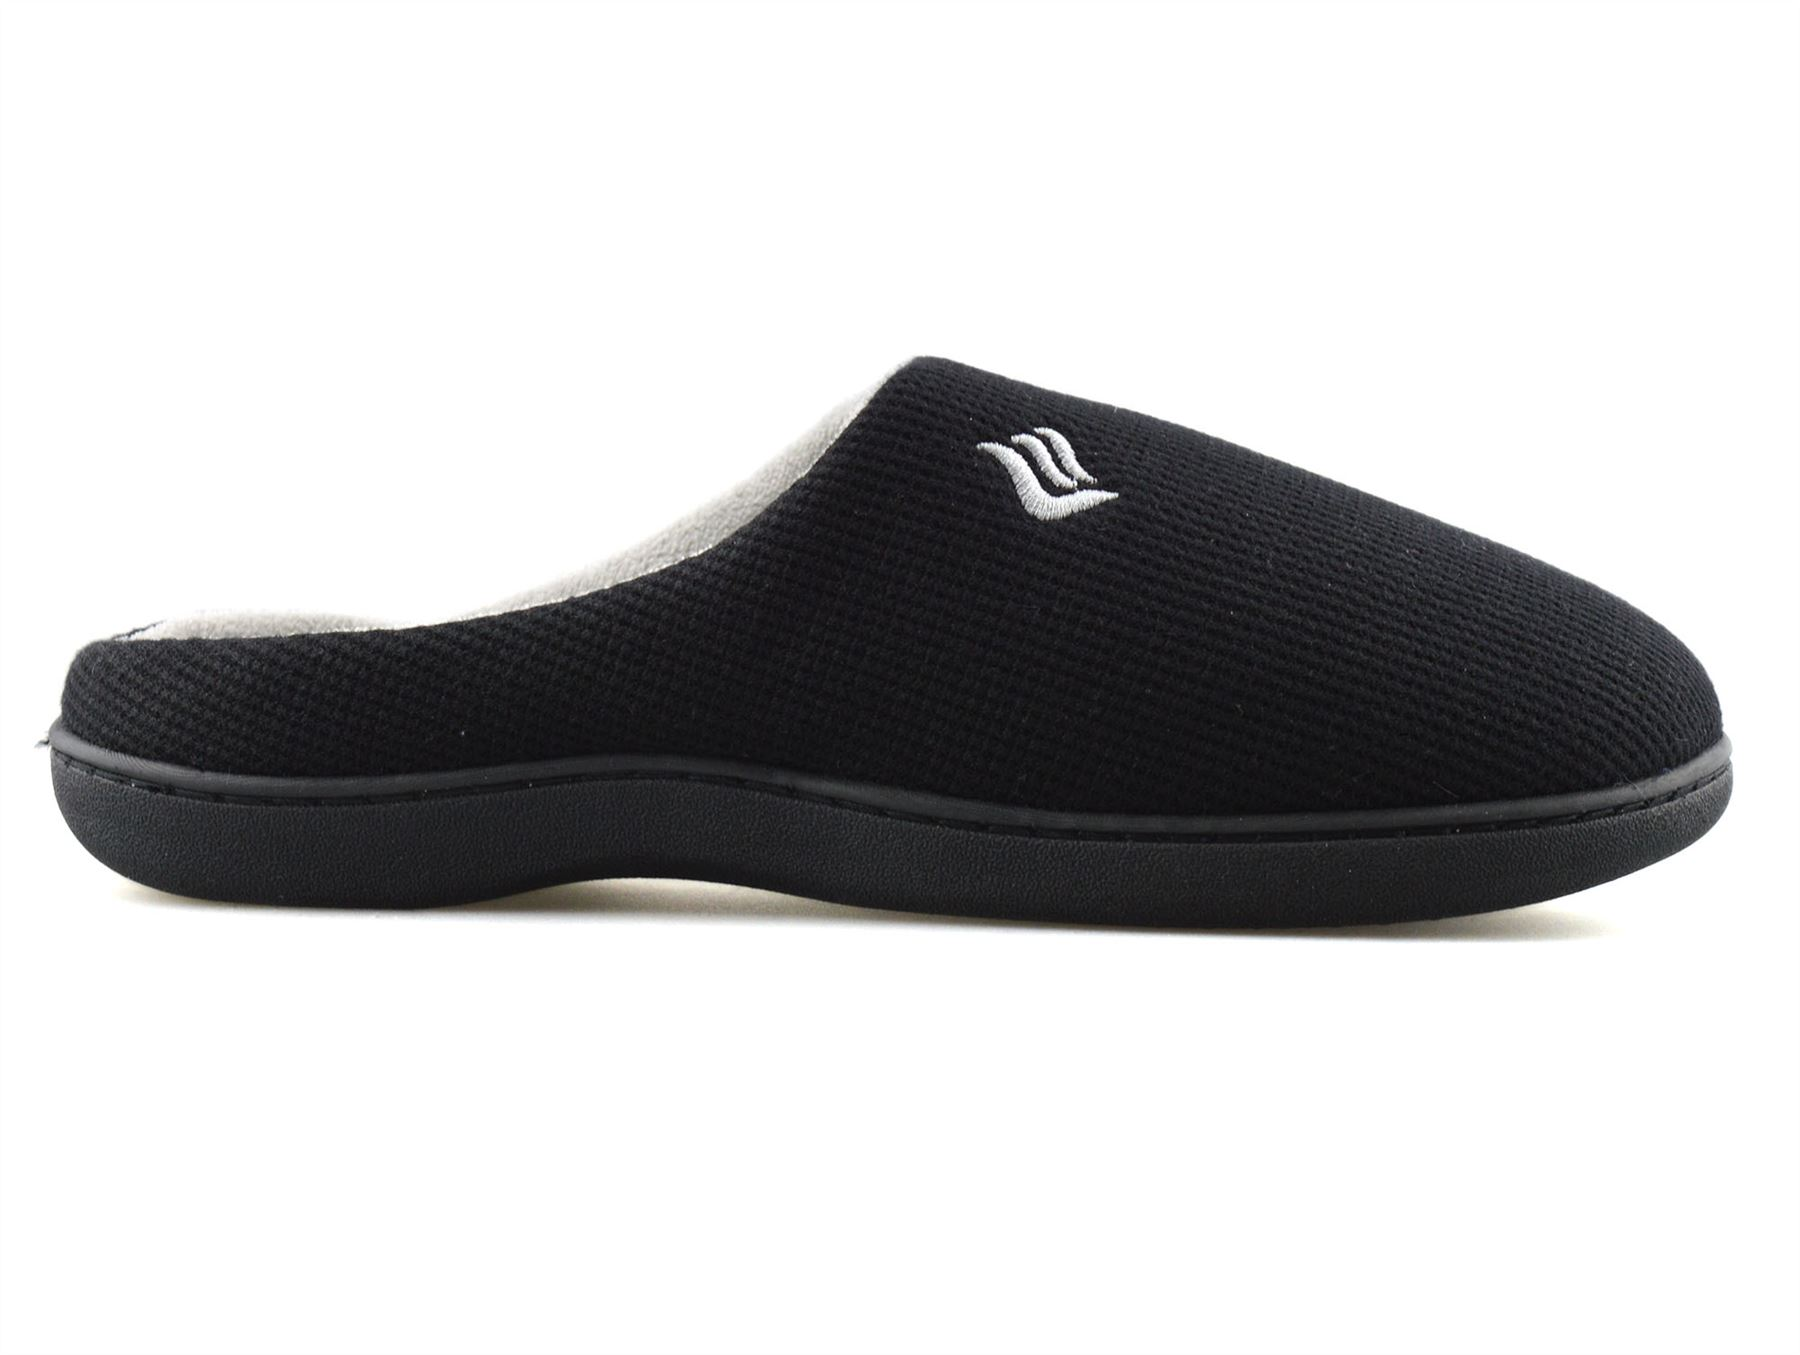 Mens-Memory-Foam-Warm-Fleece-Lined-Cotton-Slippers-Slip-On-Clog-Mules-Shoes-Size thumbnail 13